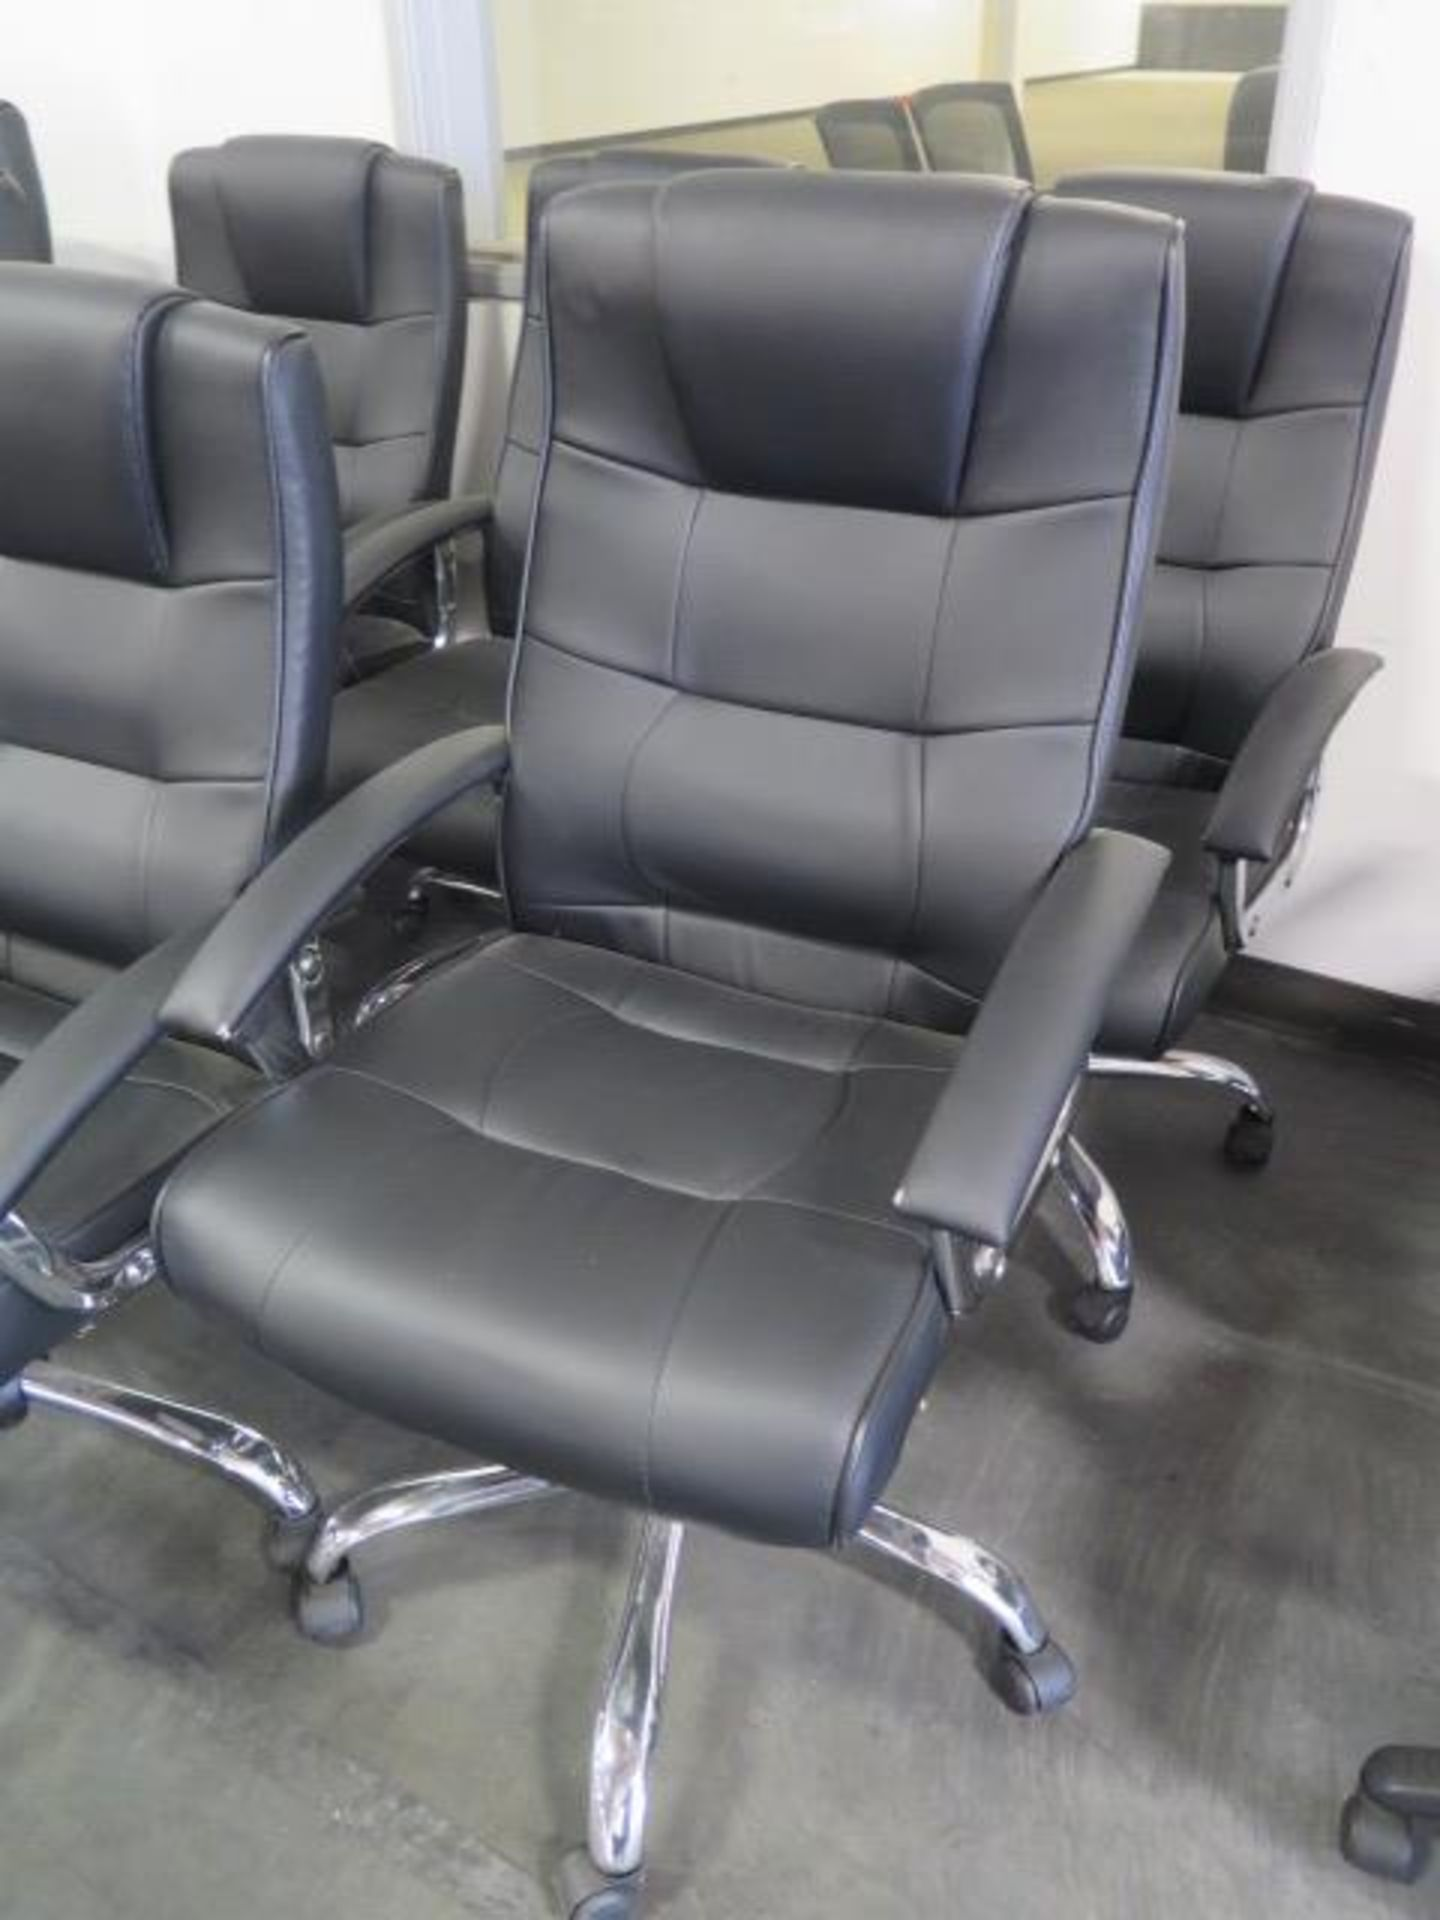 Conference / Office Chairs (11) (SOLD AS-IS - NO WARRANTY) - Image 4 of 4